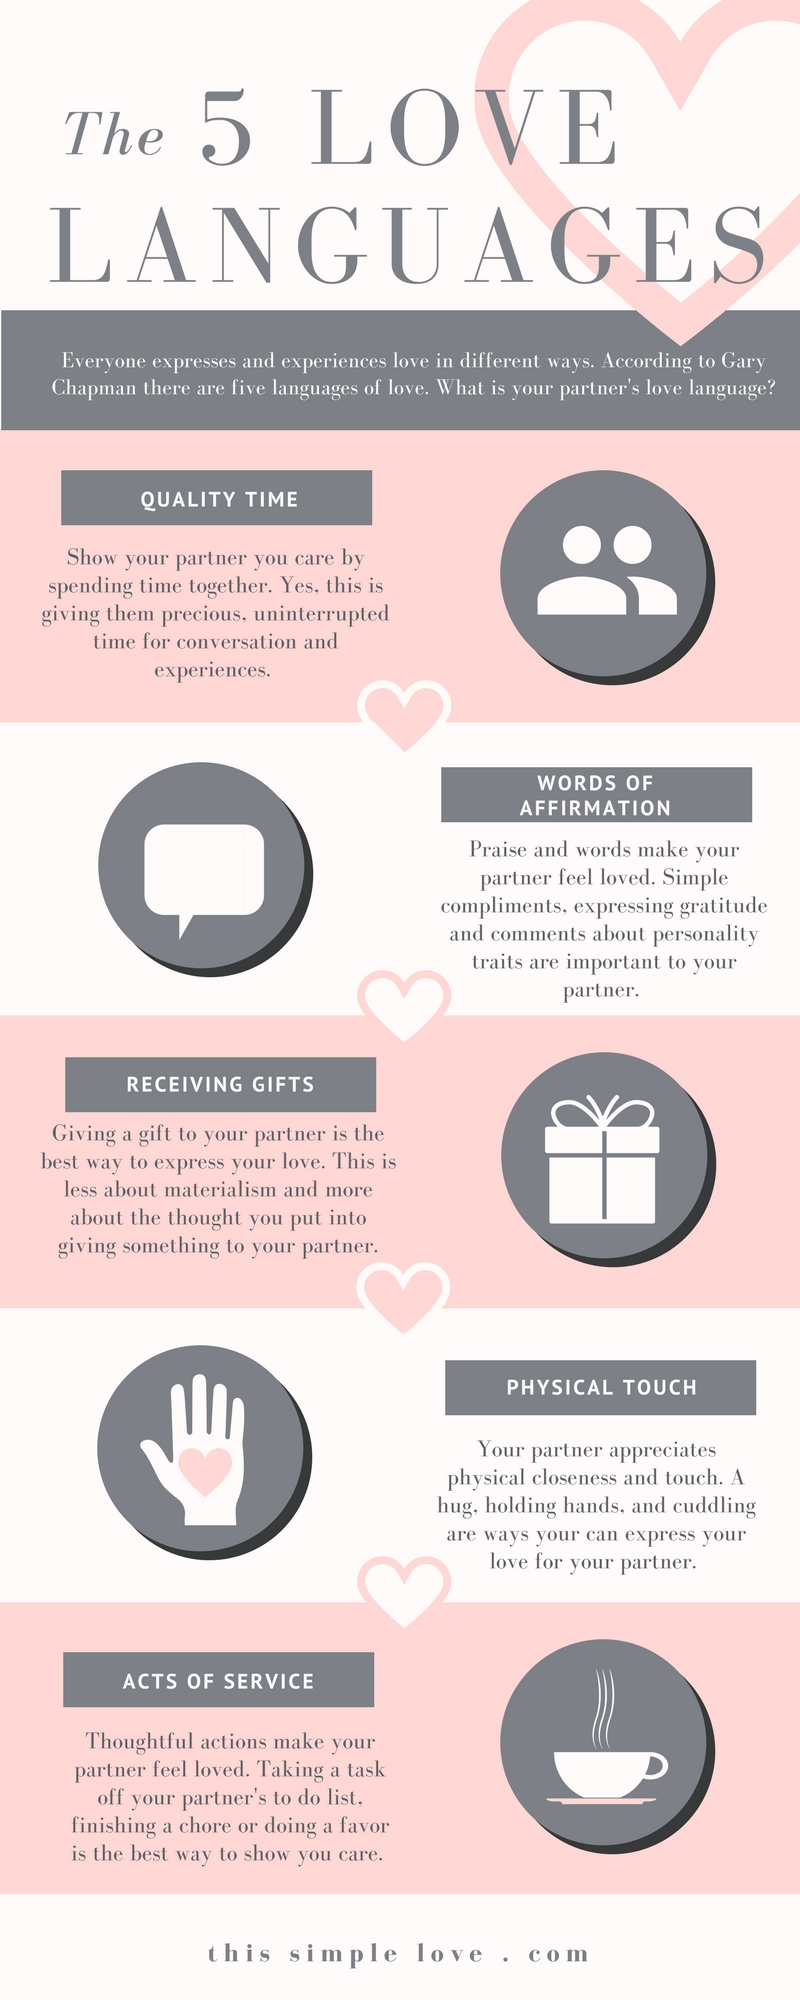 Here's a breakdown of exactly what the 5 Love Languages look like, and how you can learn to speak your partner's love language!